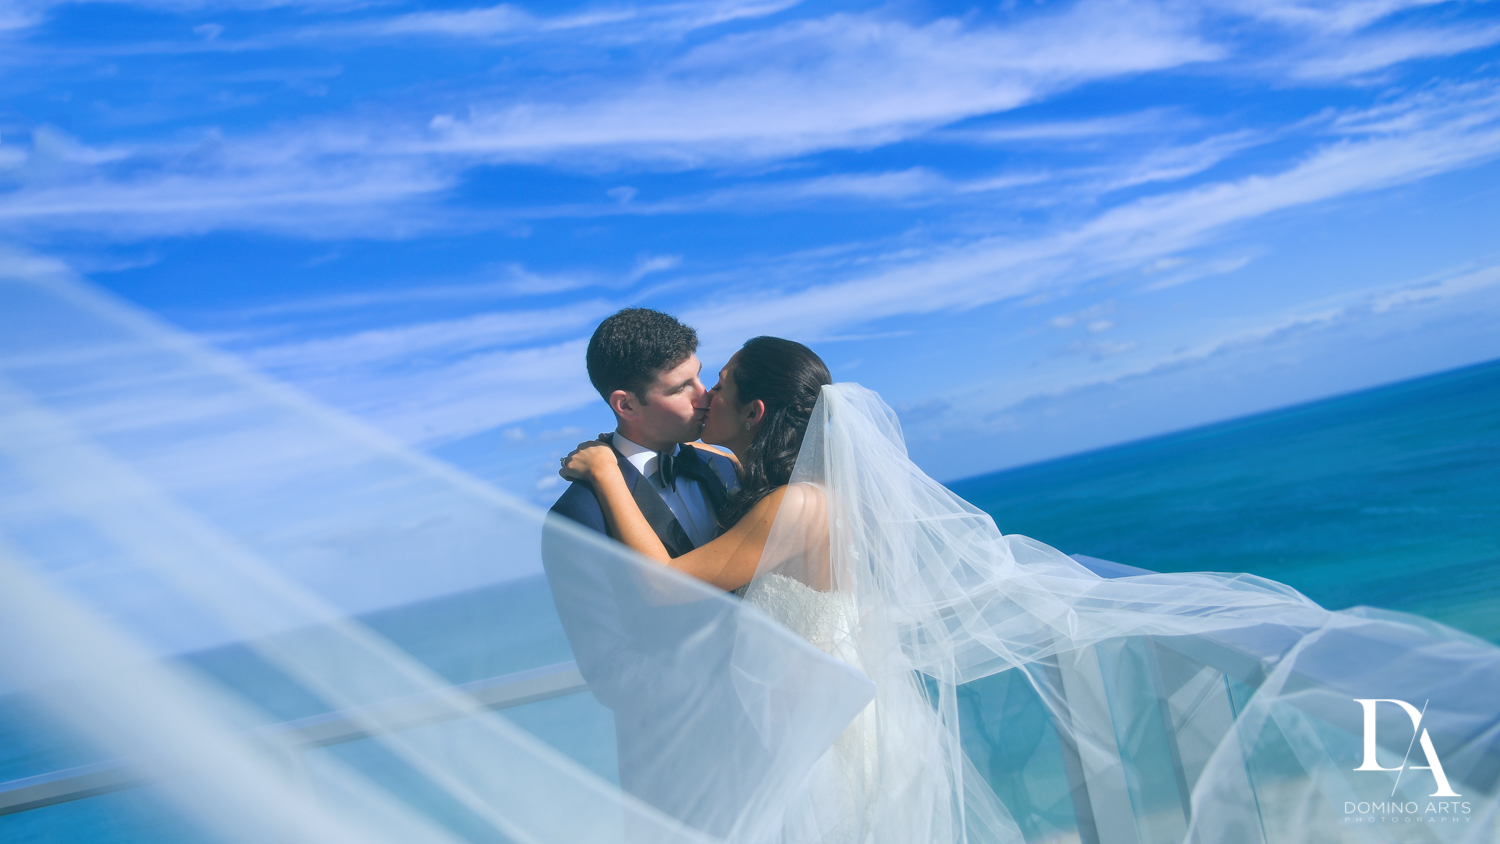 Beach portrait at Classic Miami Beach Wedding at Temple Emanu-El and Emanuel Luxury Venue by Domino Arts Photography